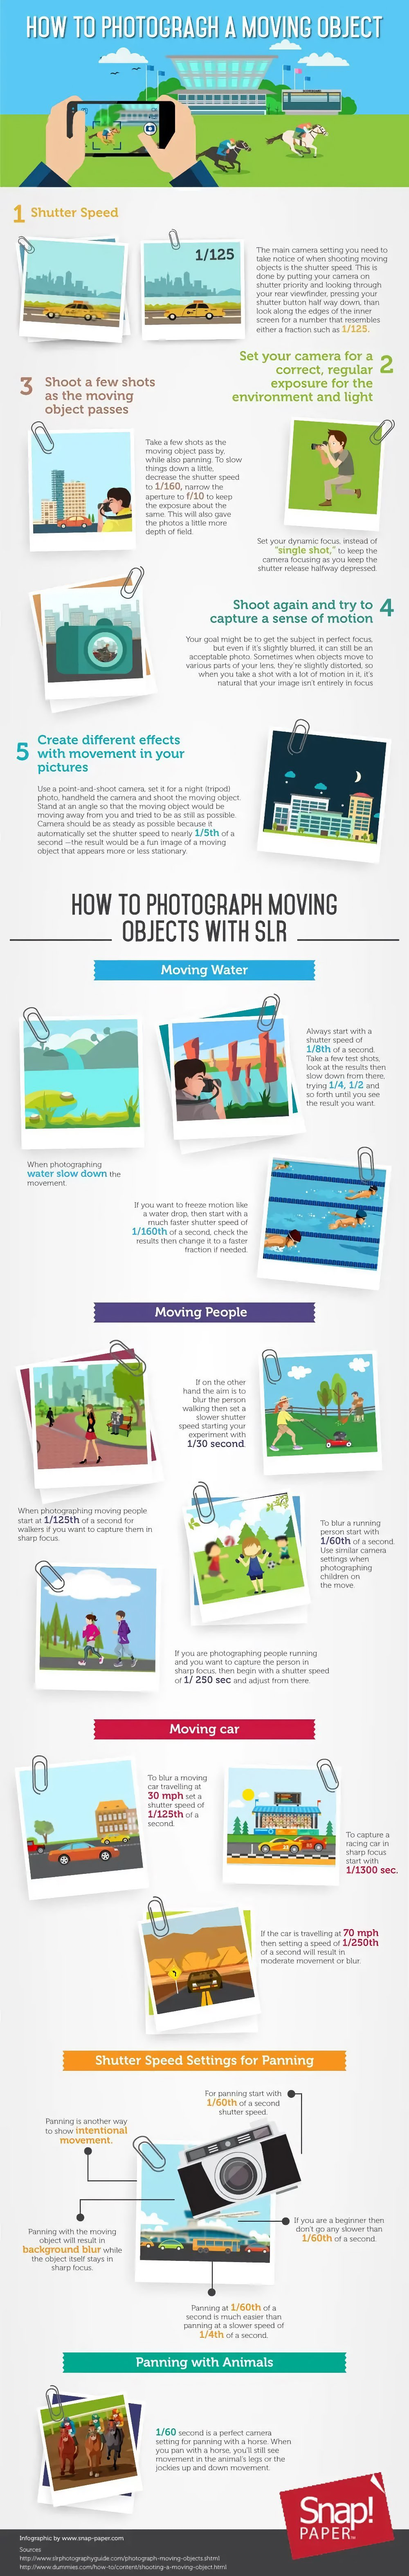 How To Photograph A Moving Object (Infographic)